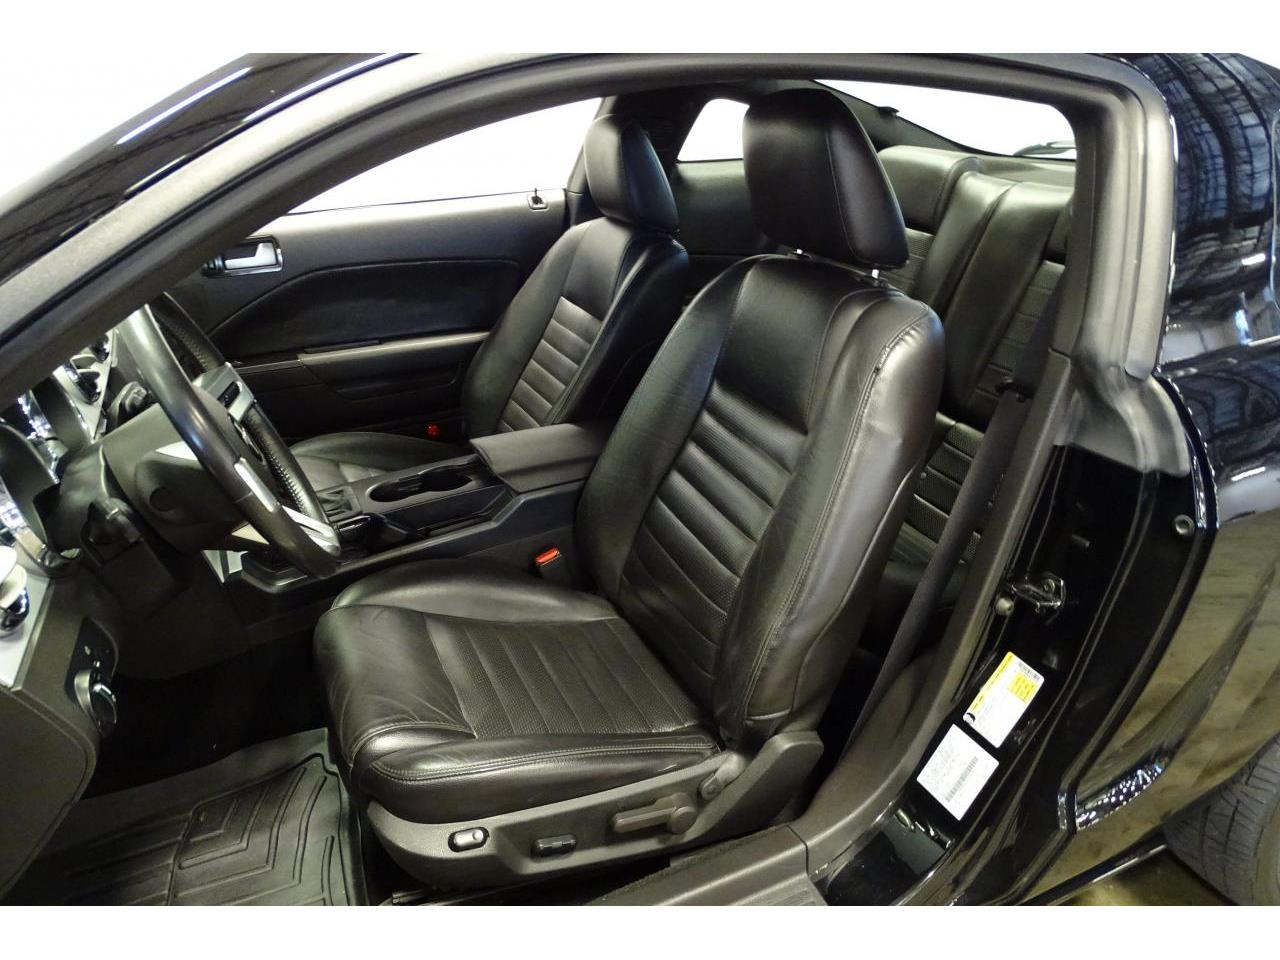 Large Picture of 2006 Ford Mustang located in Tennessee - $15,595.00 Offered by Gateway Classic Cars - Nashville - MFDI